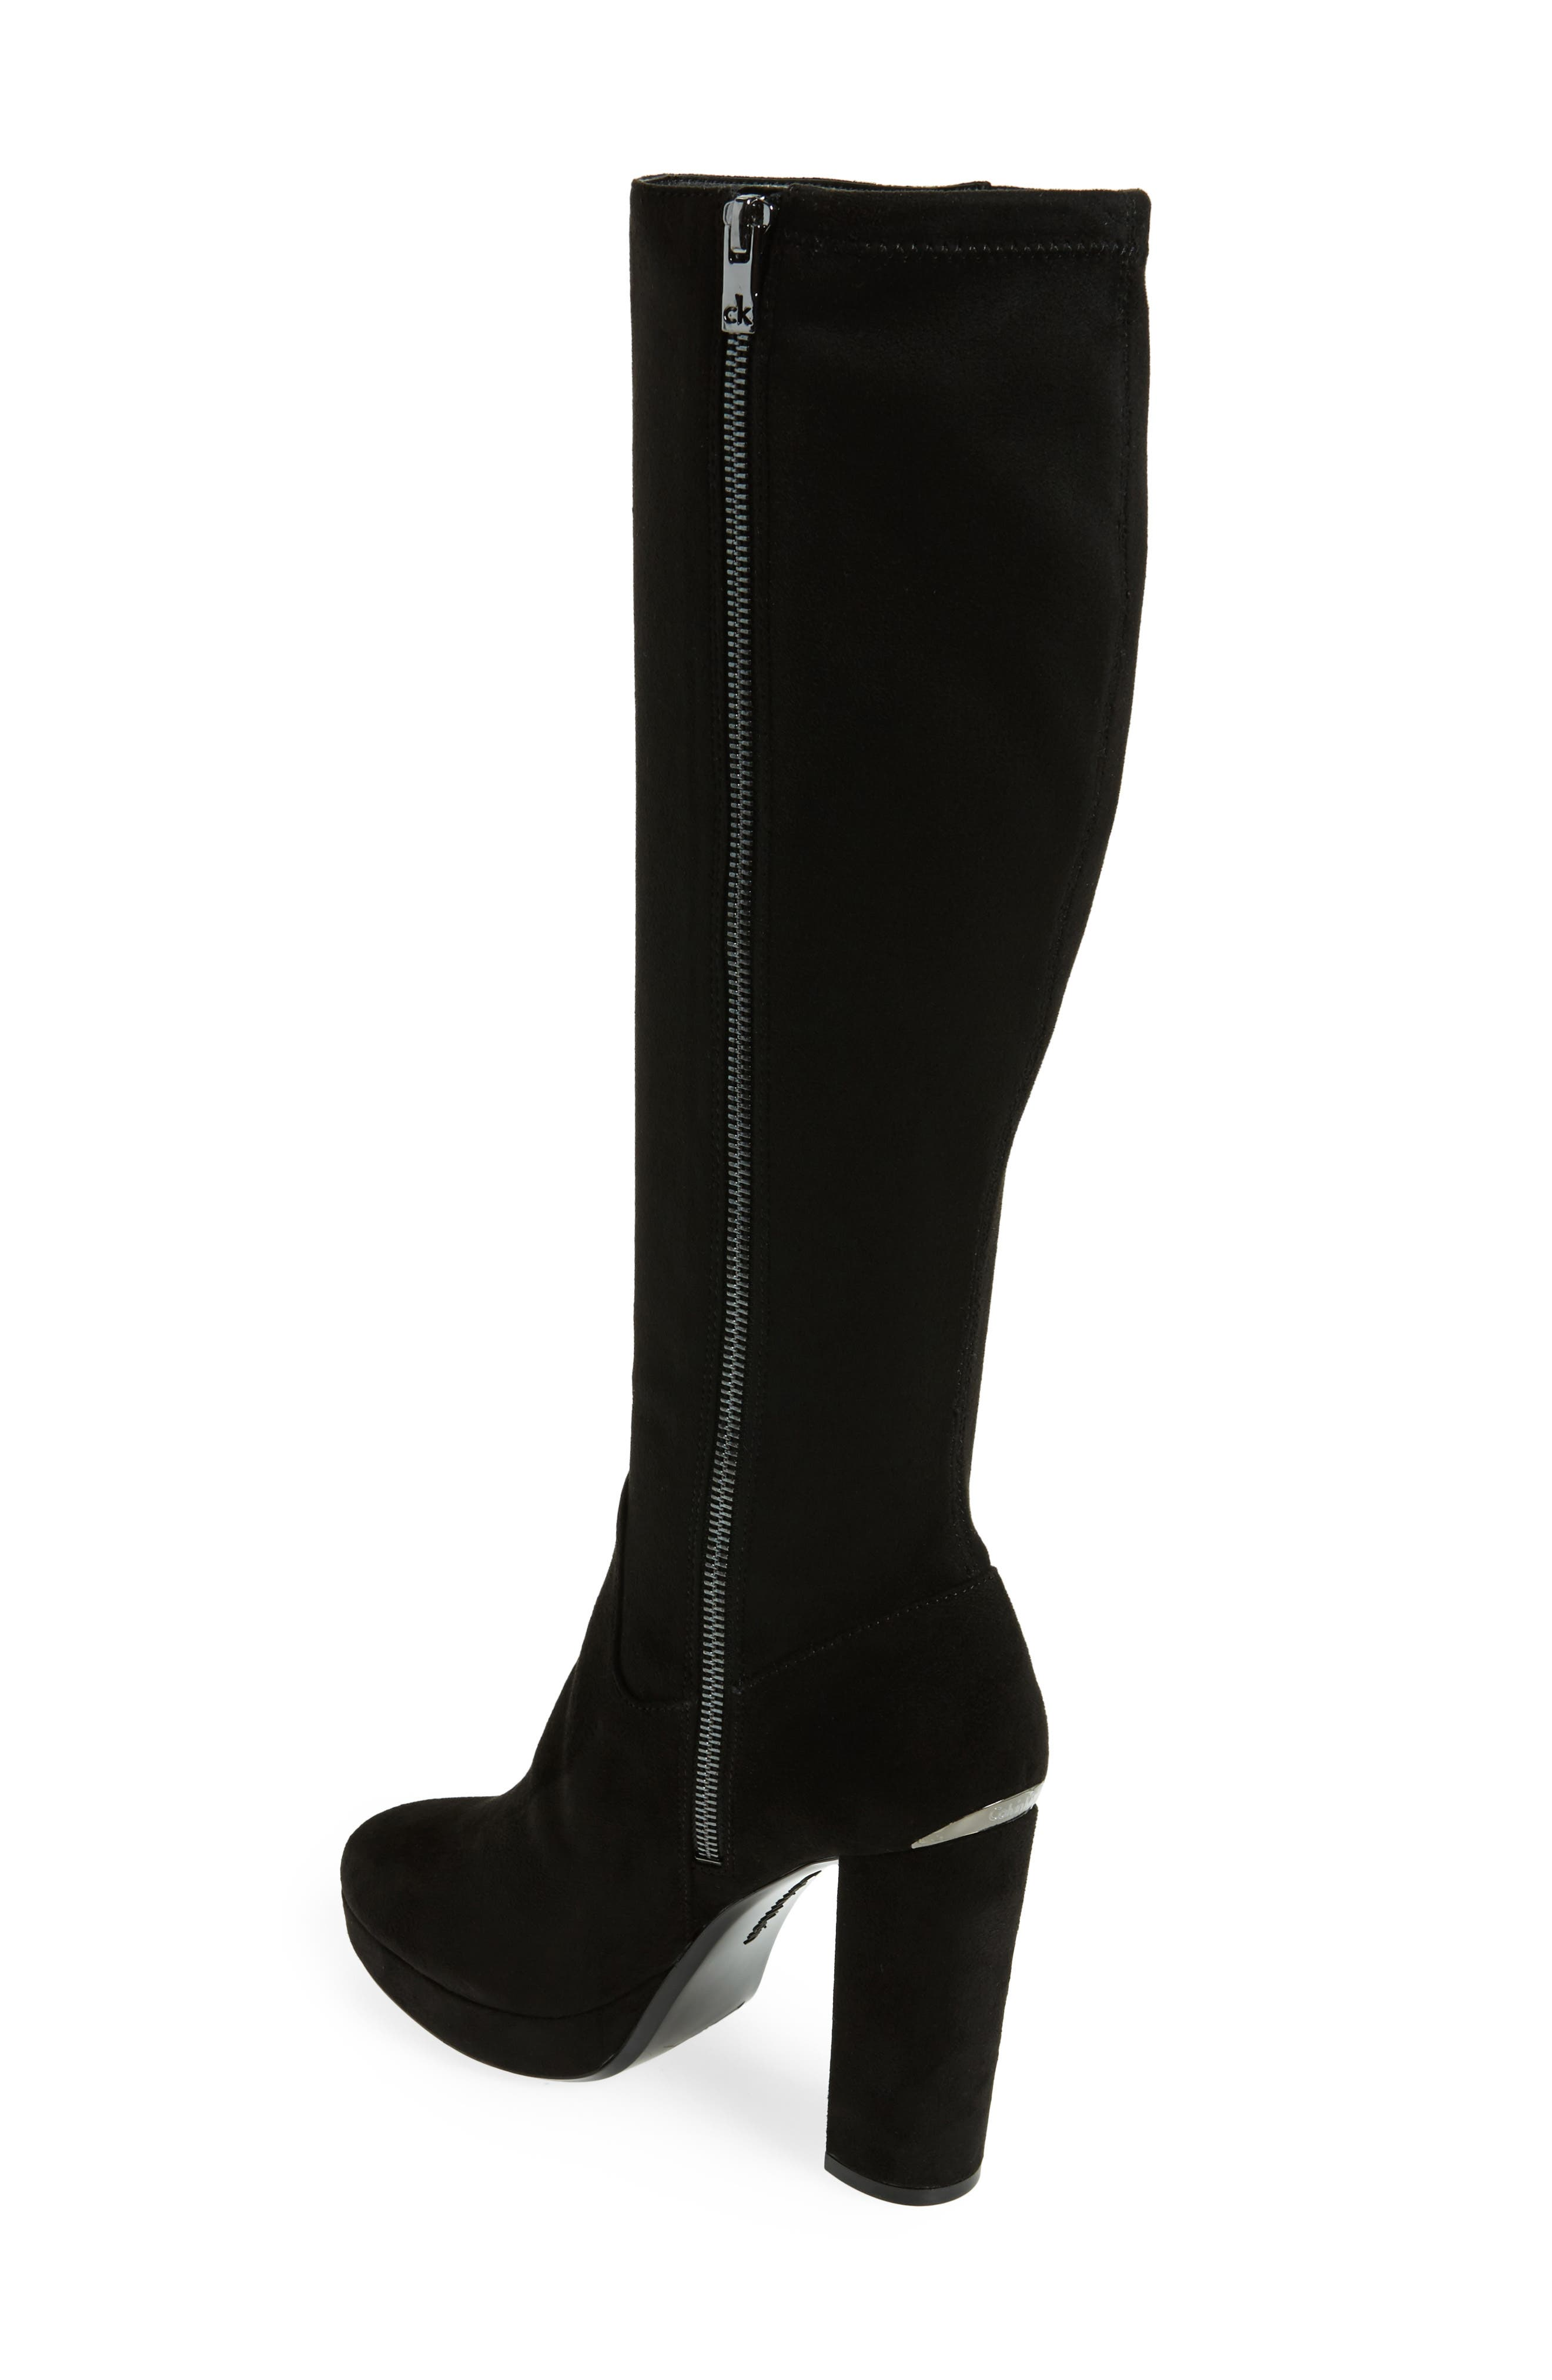 Mailia Tall Boot,                             Alternate thumbnail 2, color,                             Black Suede